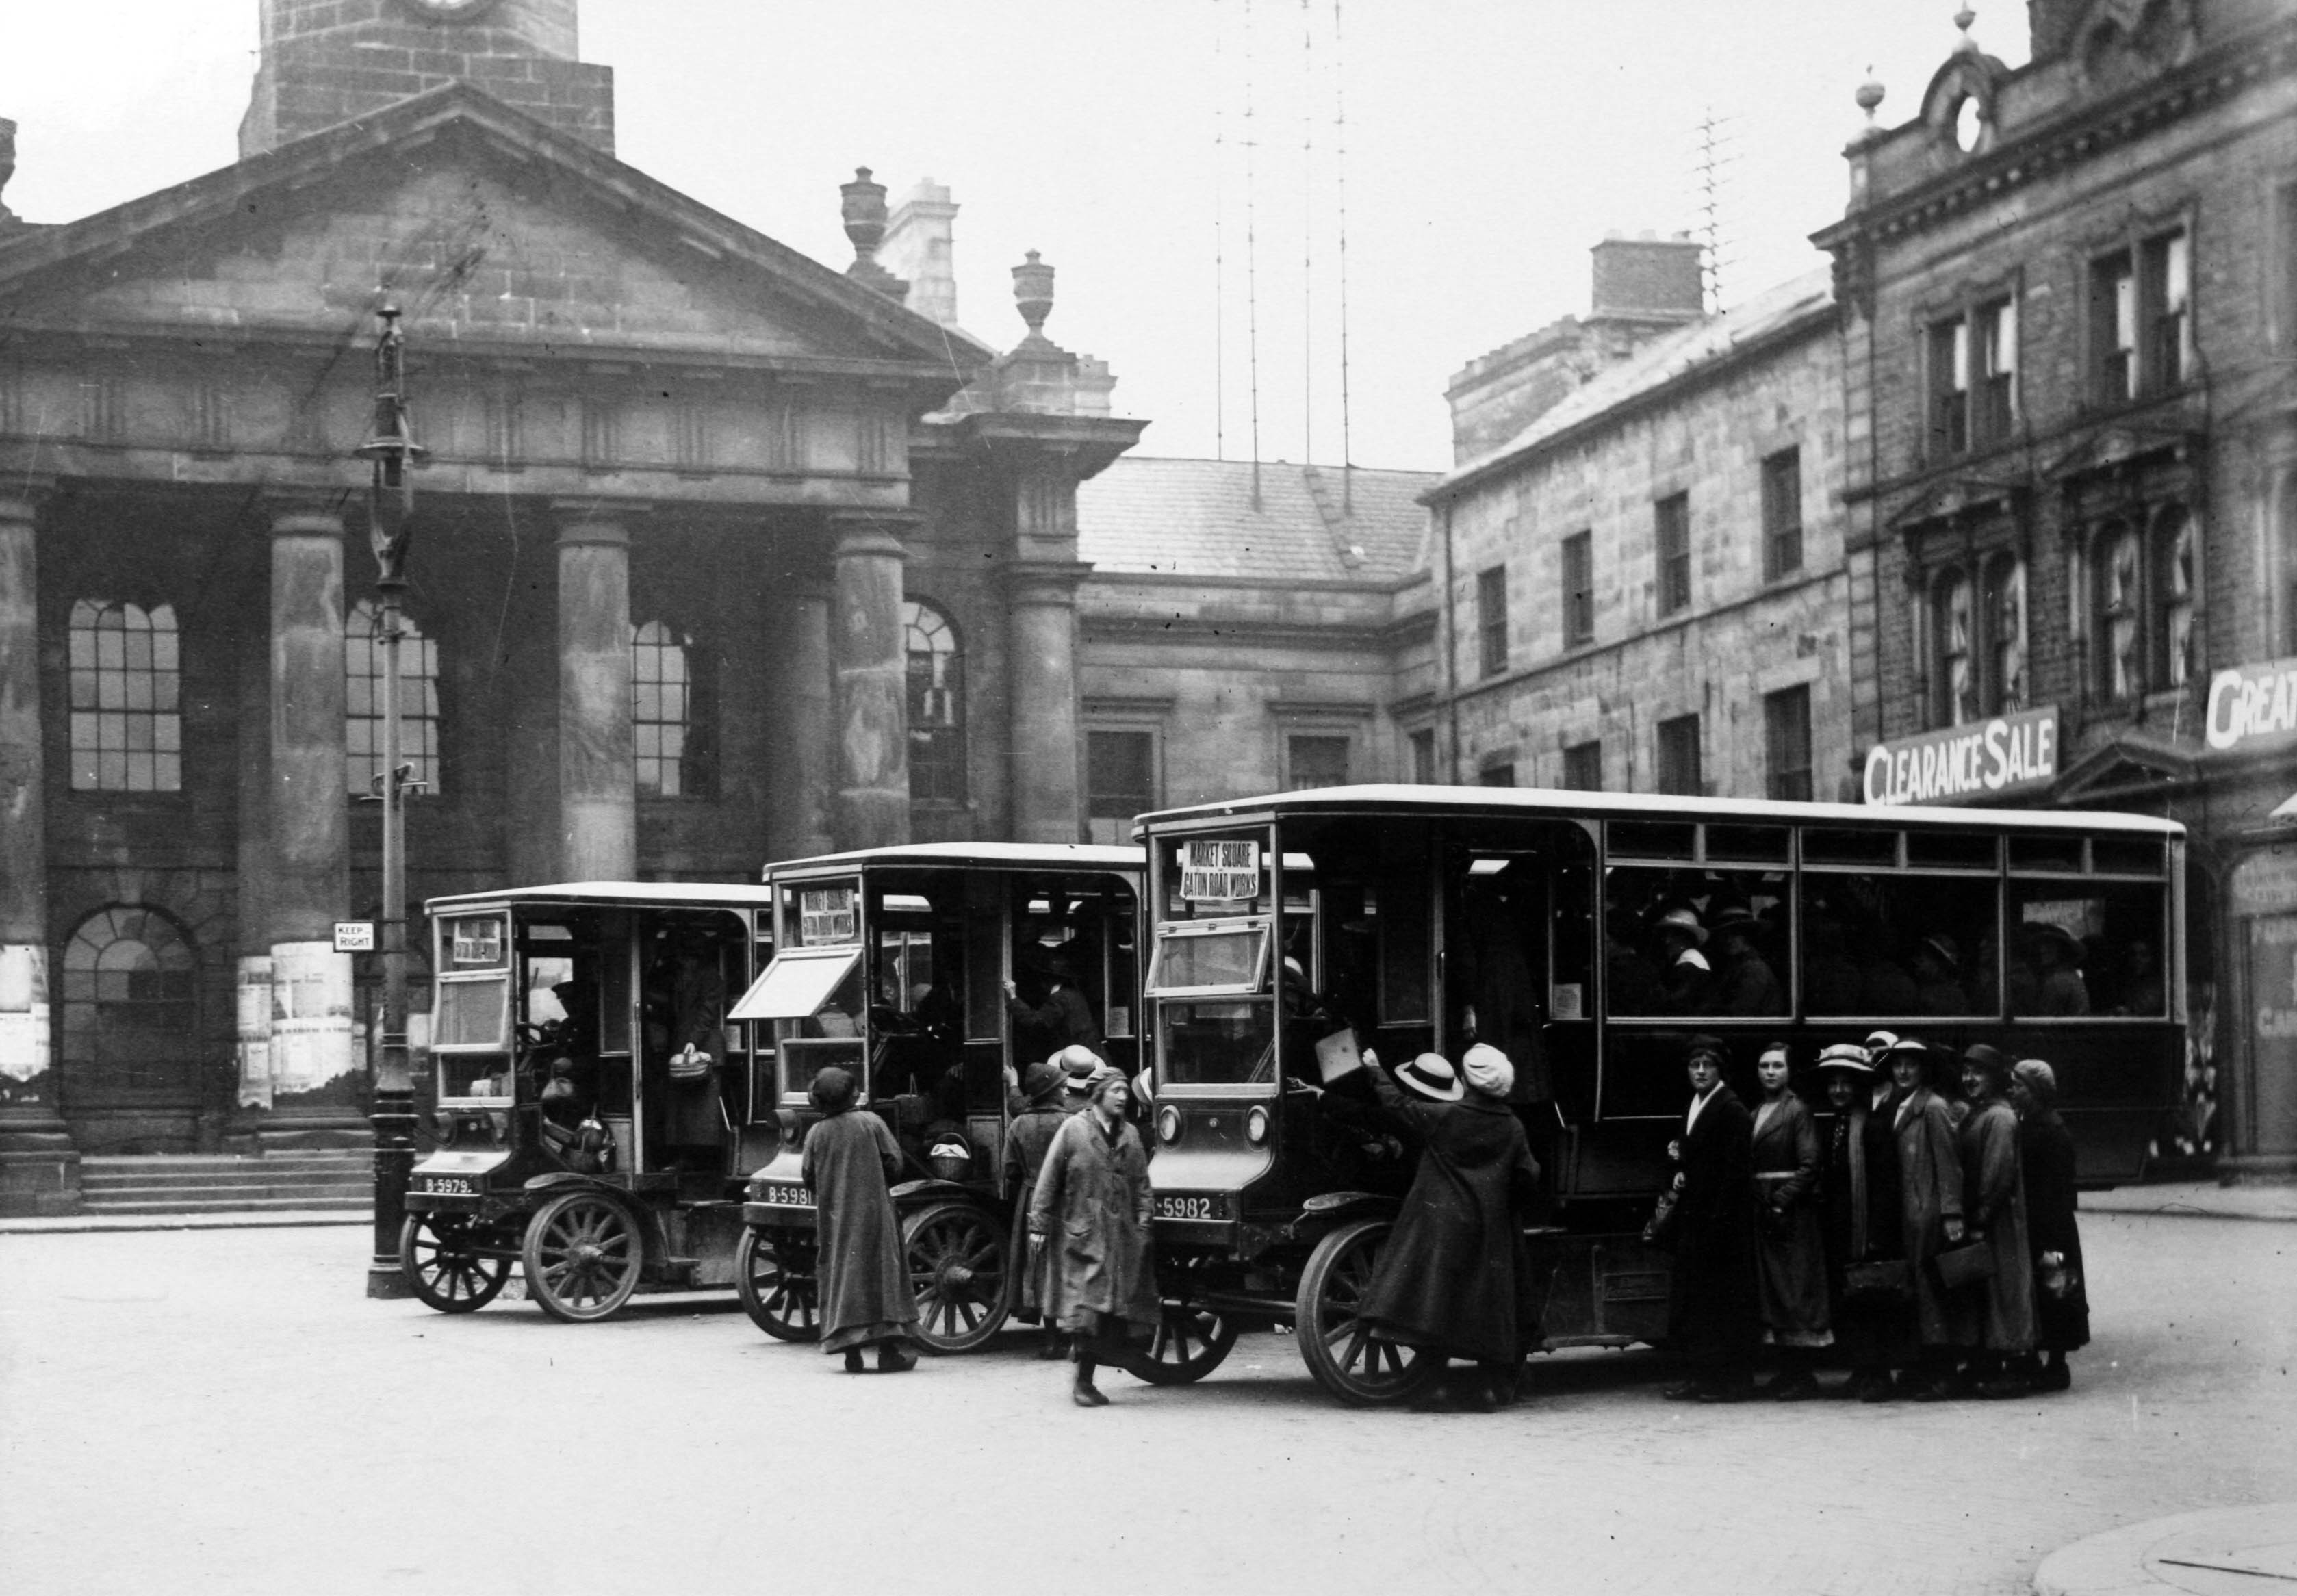 Munitions workers catching bus